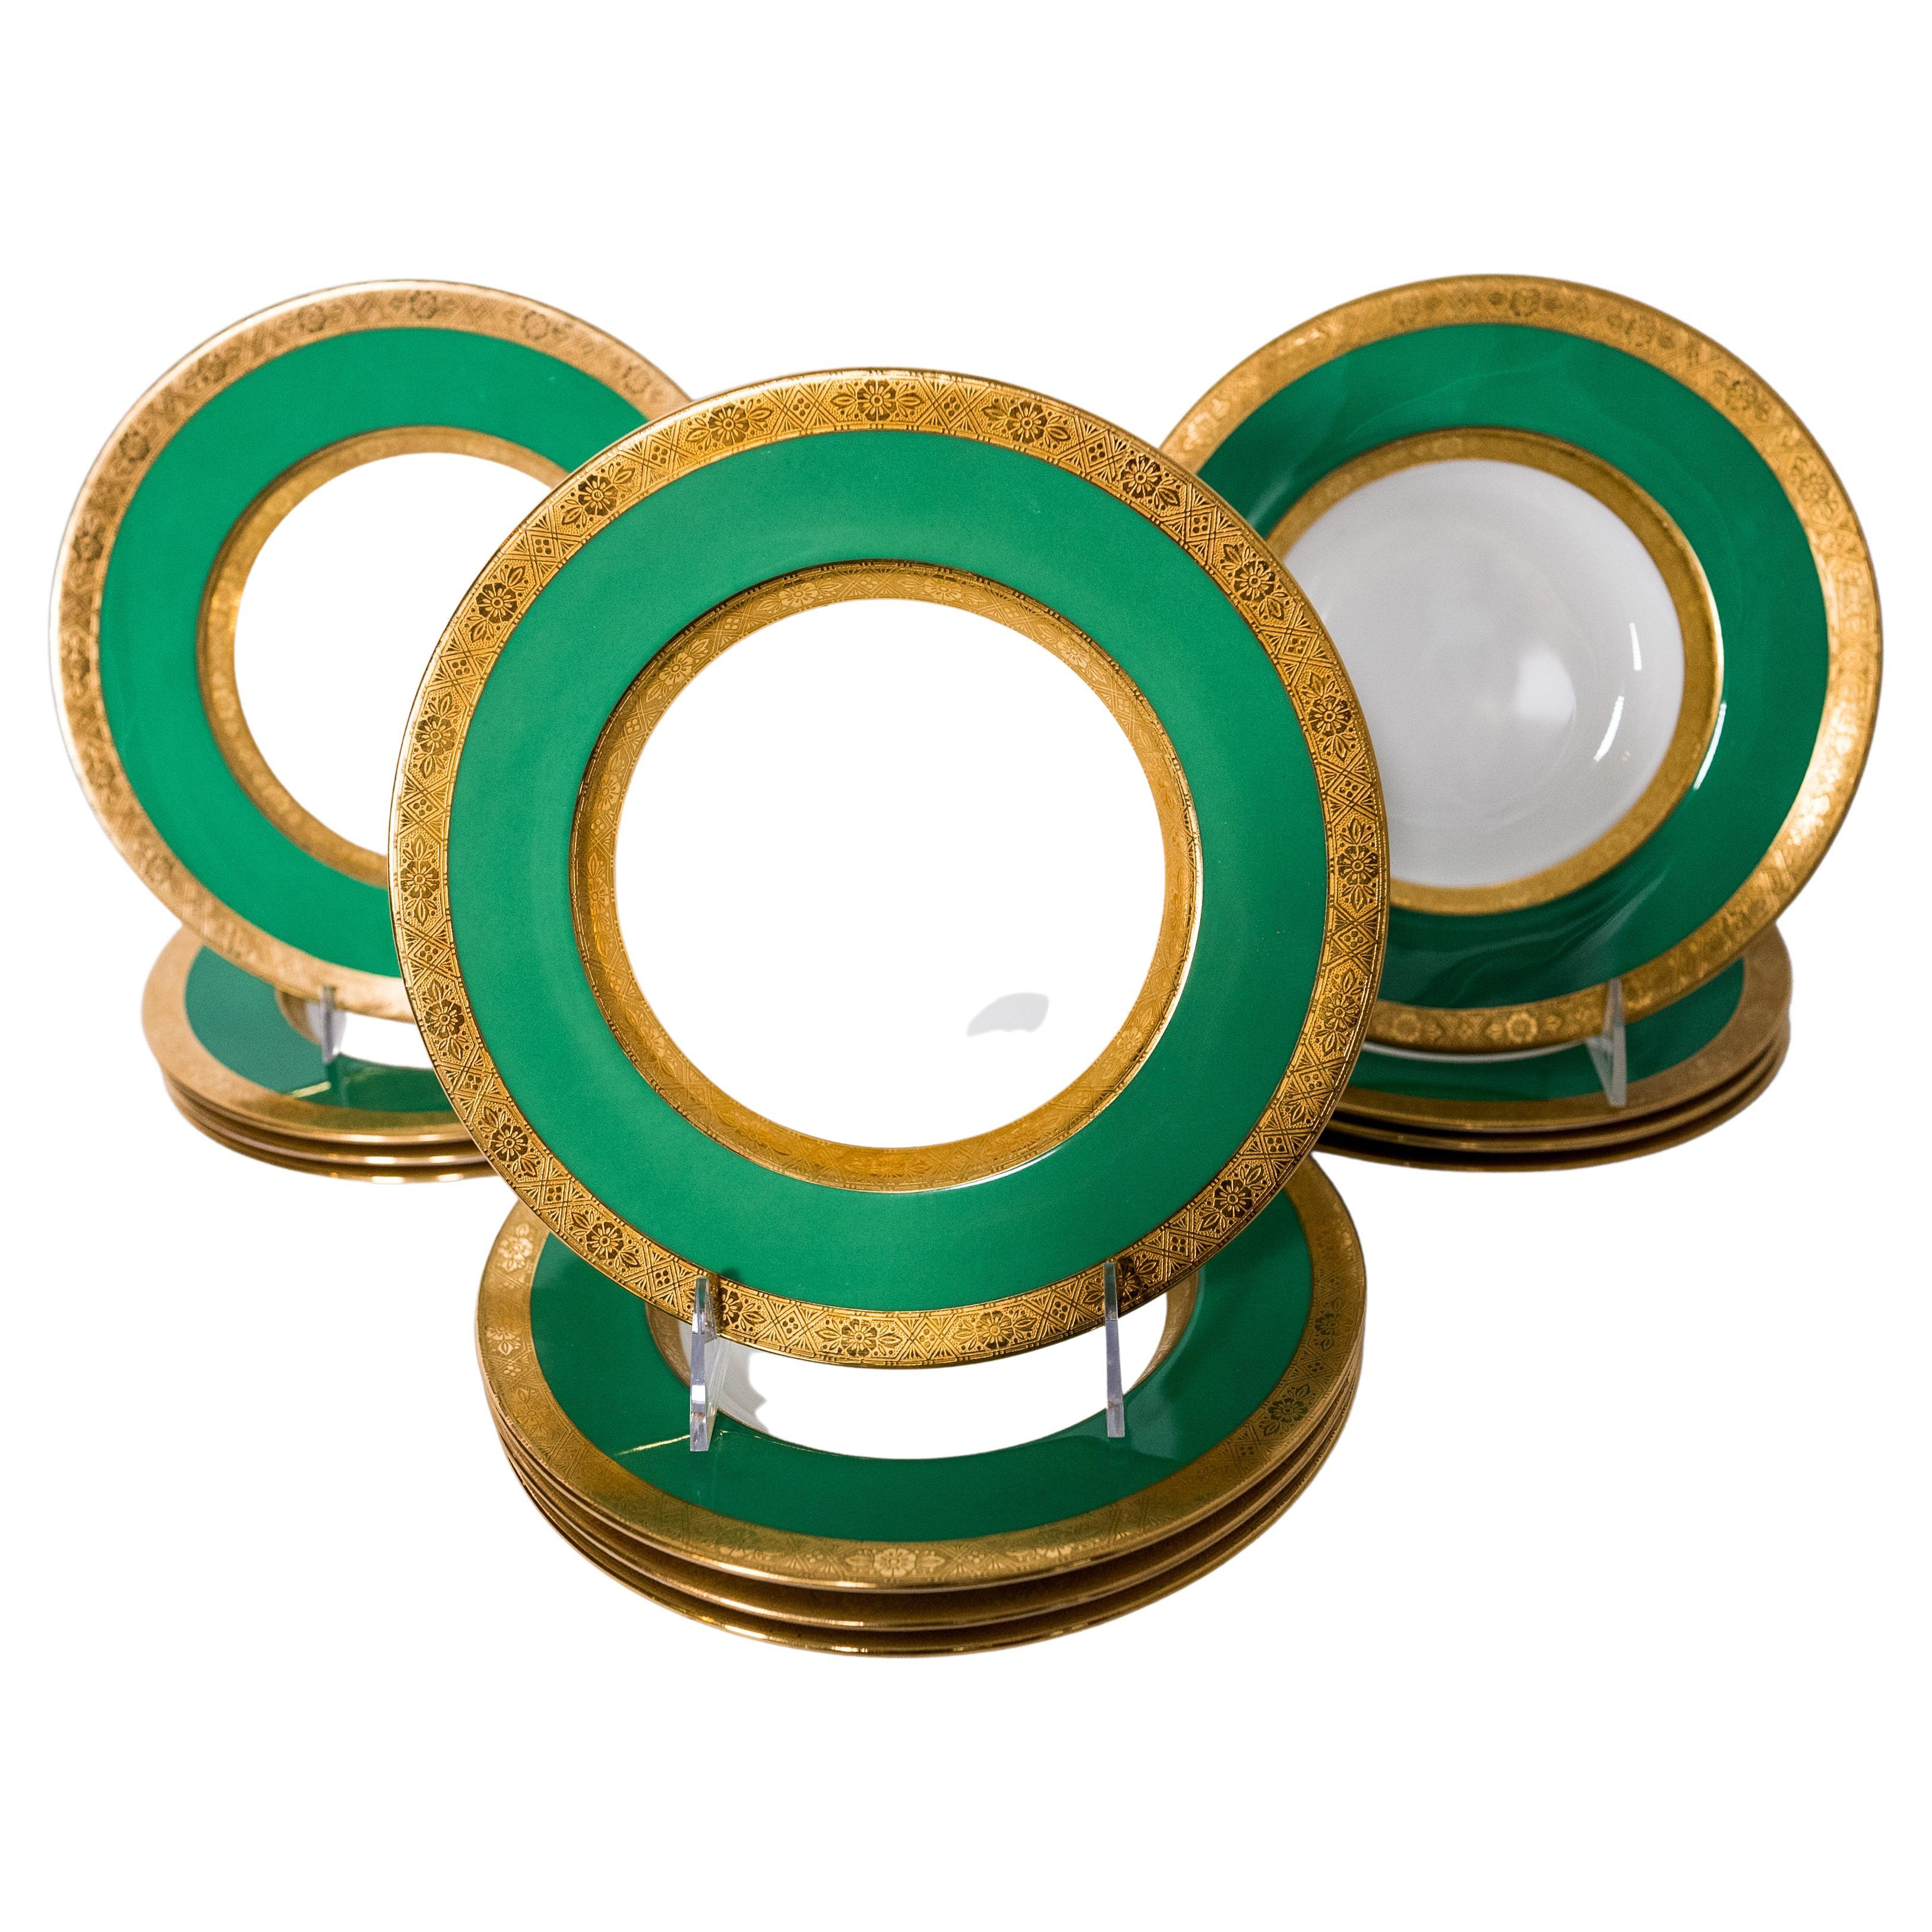 12 Minton for Tiffany Vibrant Green Rimmed Soup Bowls, Extra Wide Collar